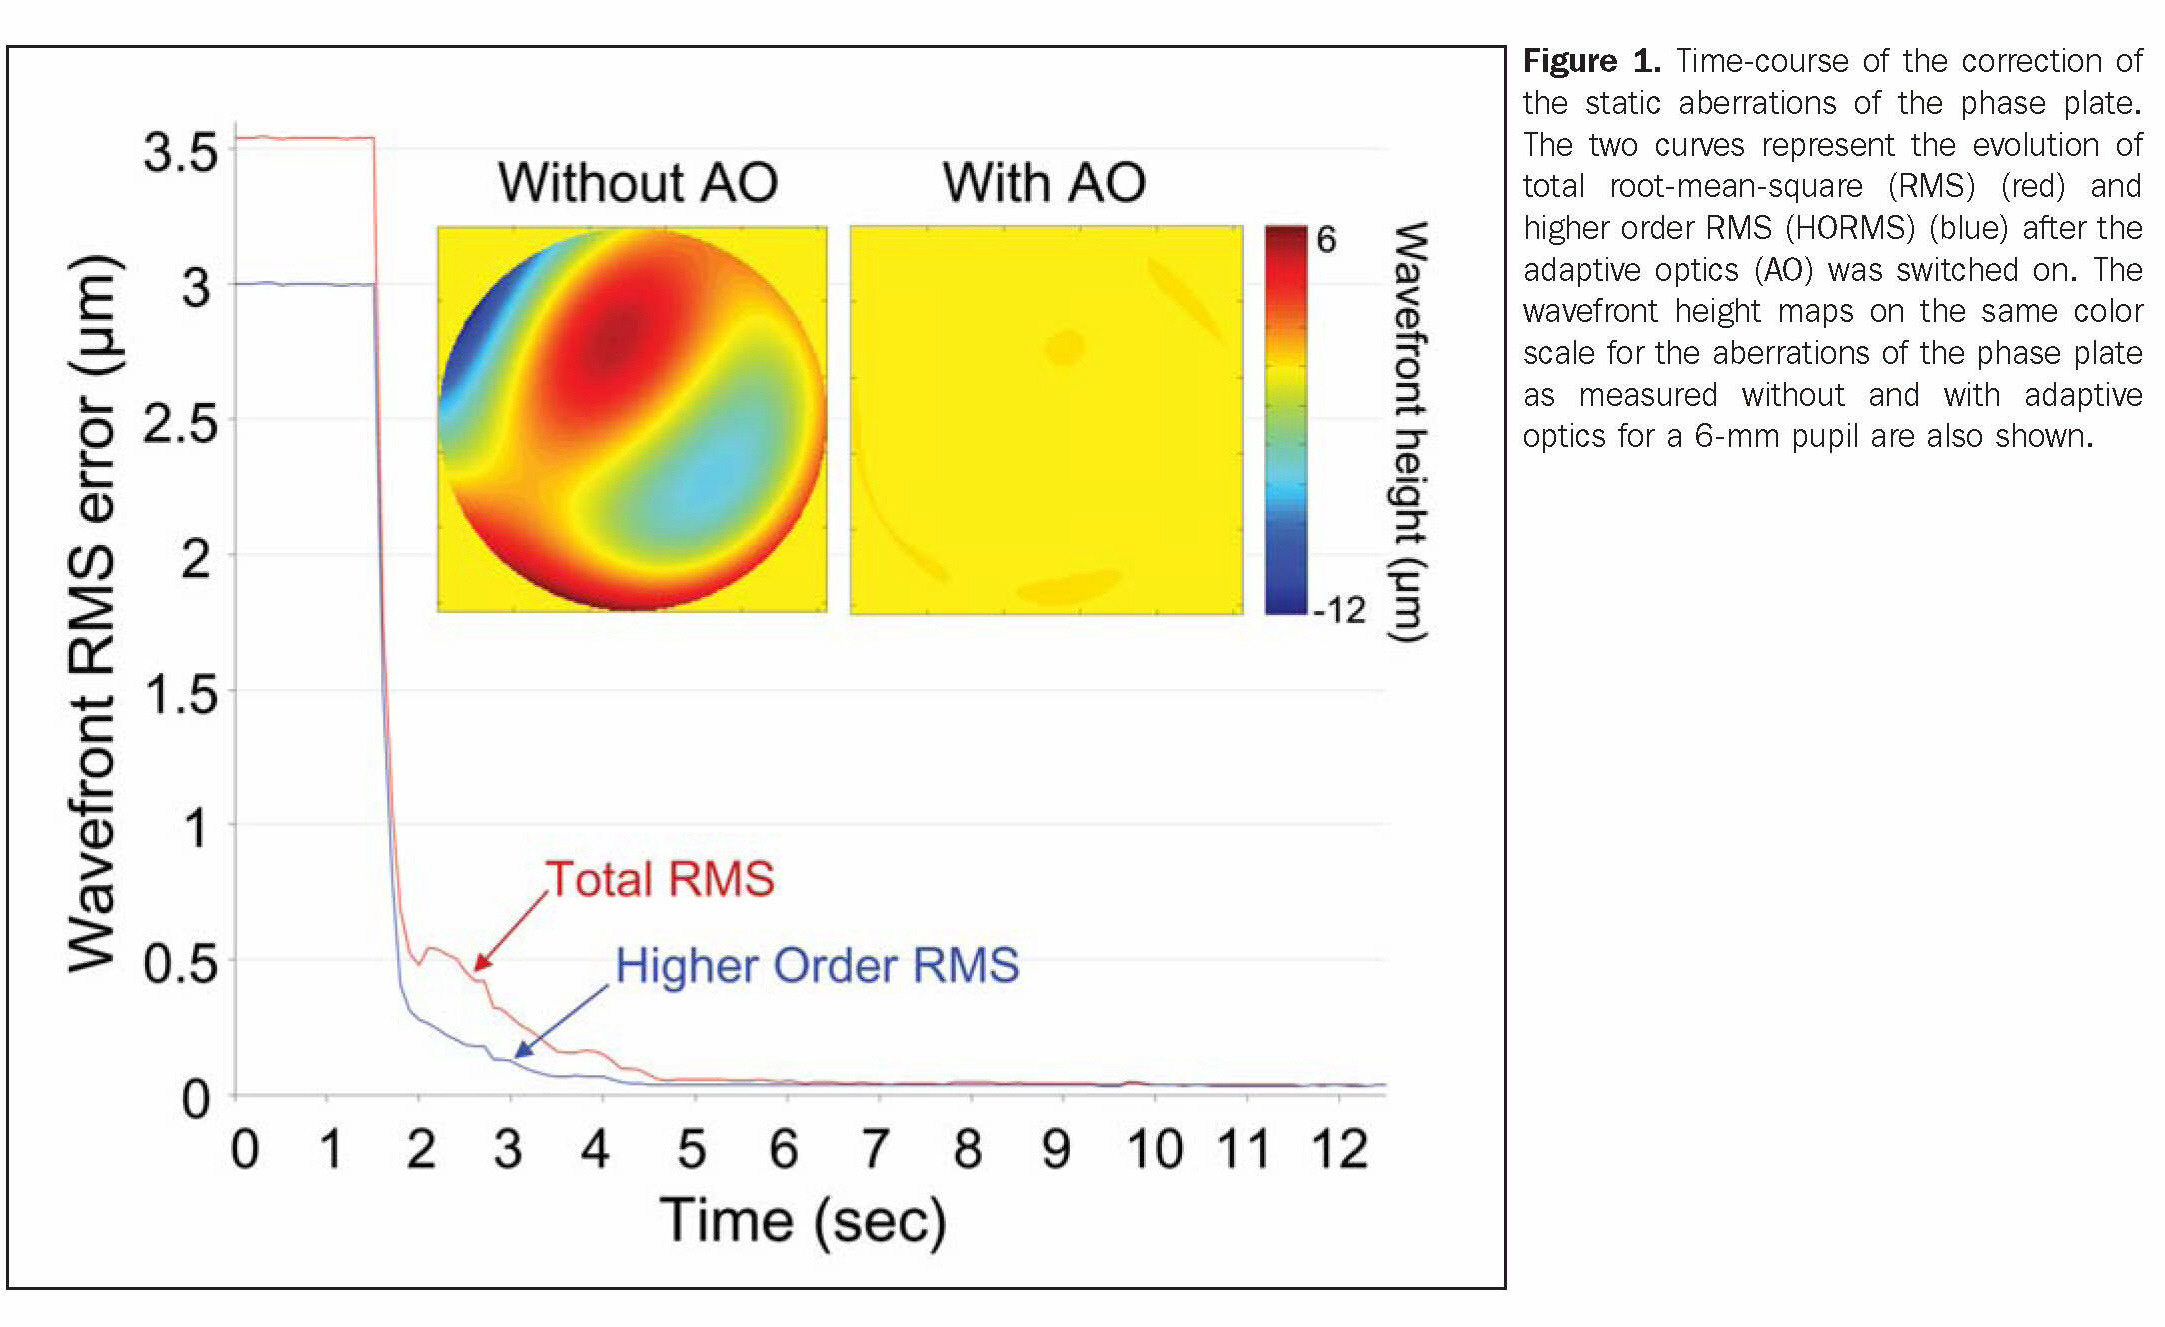 Figure 1. Time-course of the correction of the static aberrations of the phase plate. The two curves represent the evolution of total root- mean-square (RMS) (red) and higher order RMS (HORMS) (blue) after the adaptive optics (AO) was switched on. The wavefront height maps on the same color scale for the aberrations of the phase plate as measured without and with adaptive optics for a 6-mm pupil are also shown.